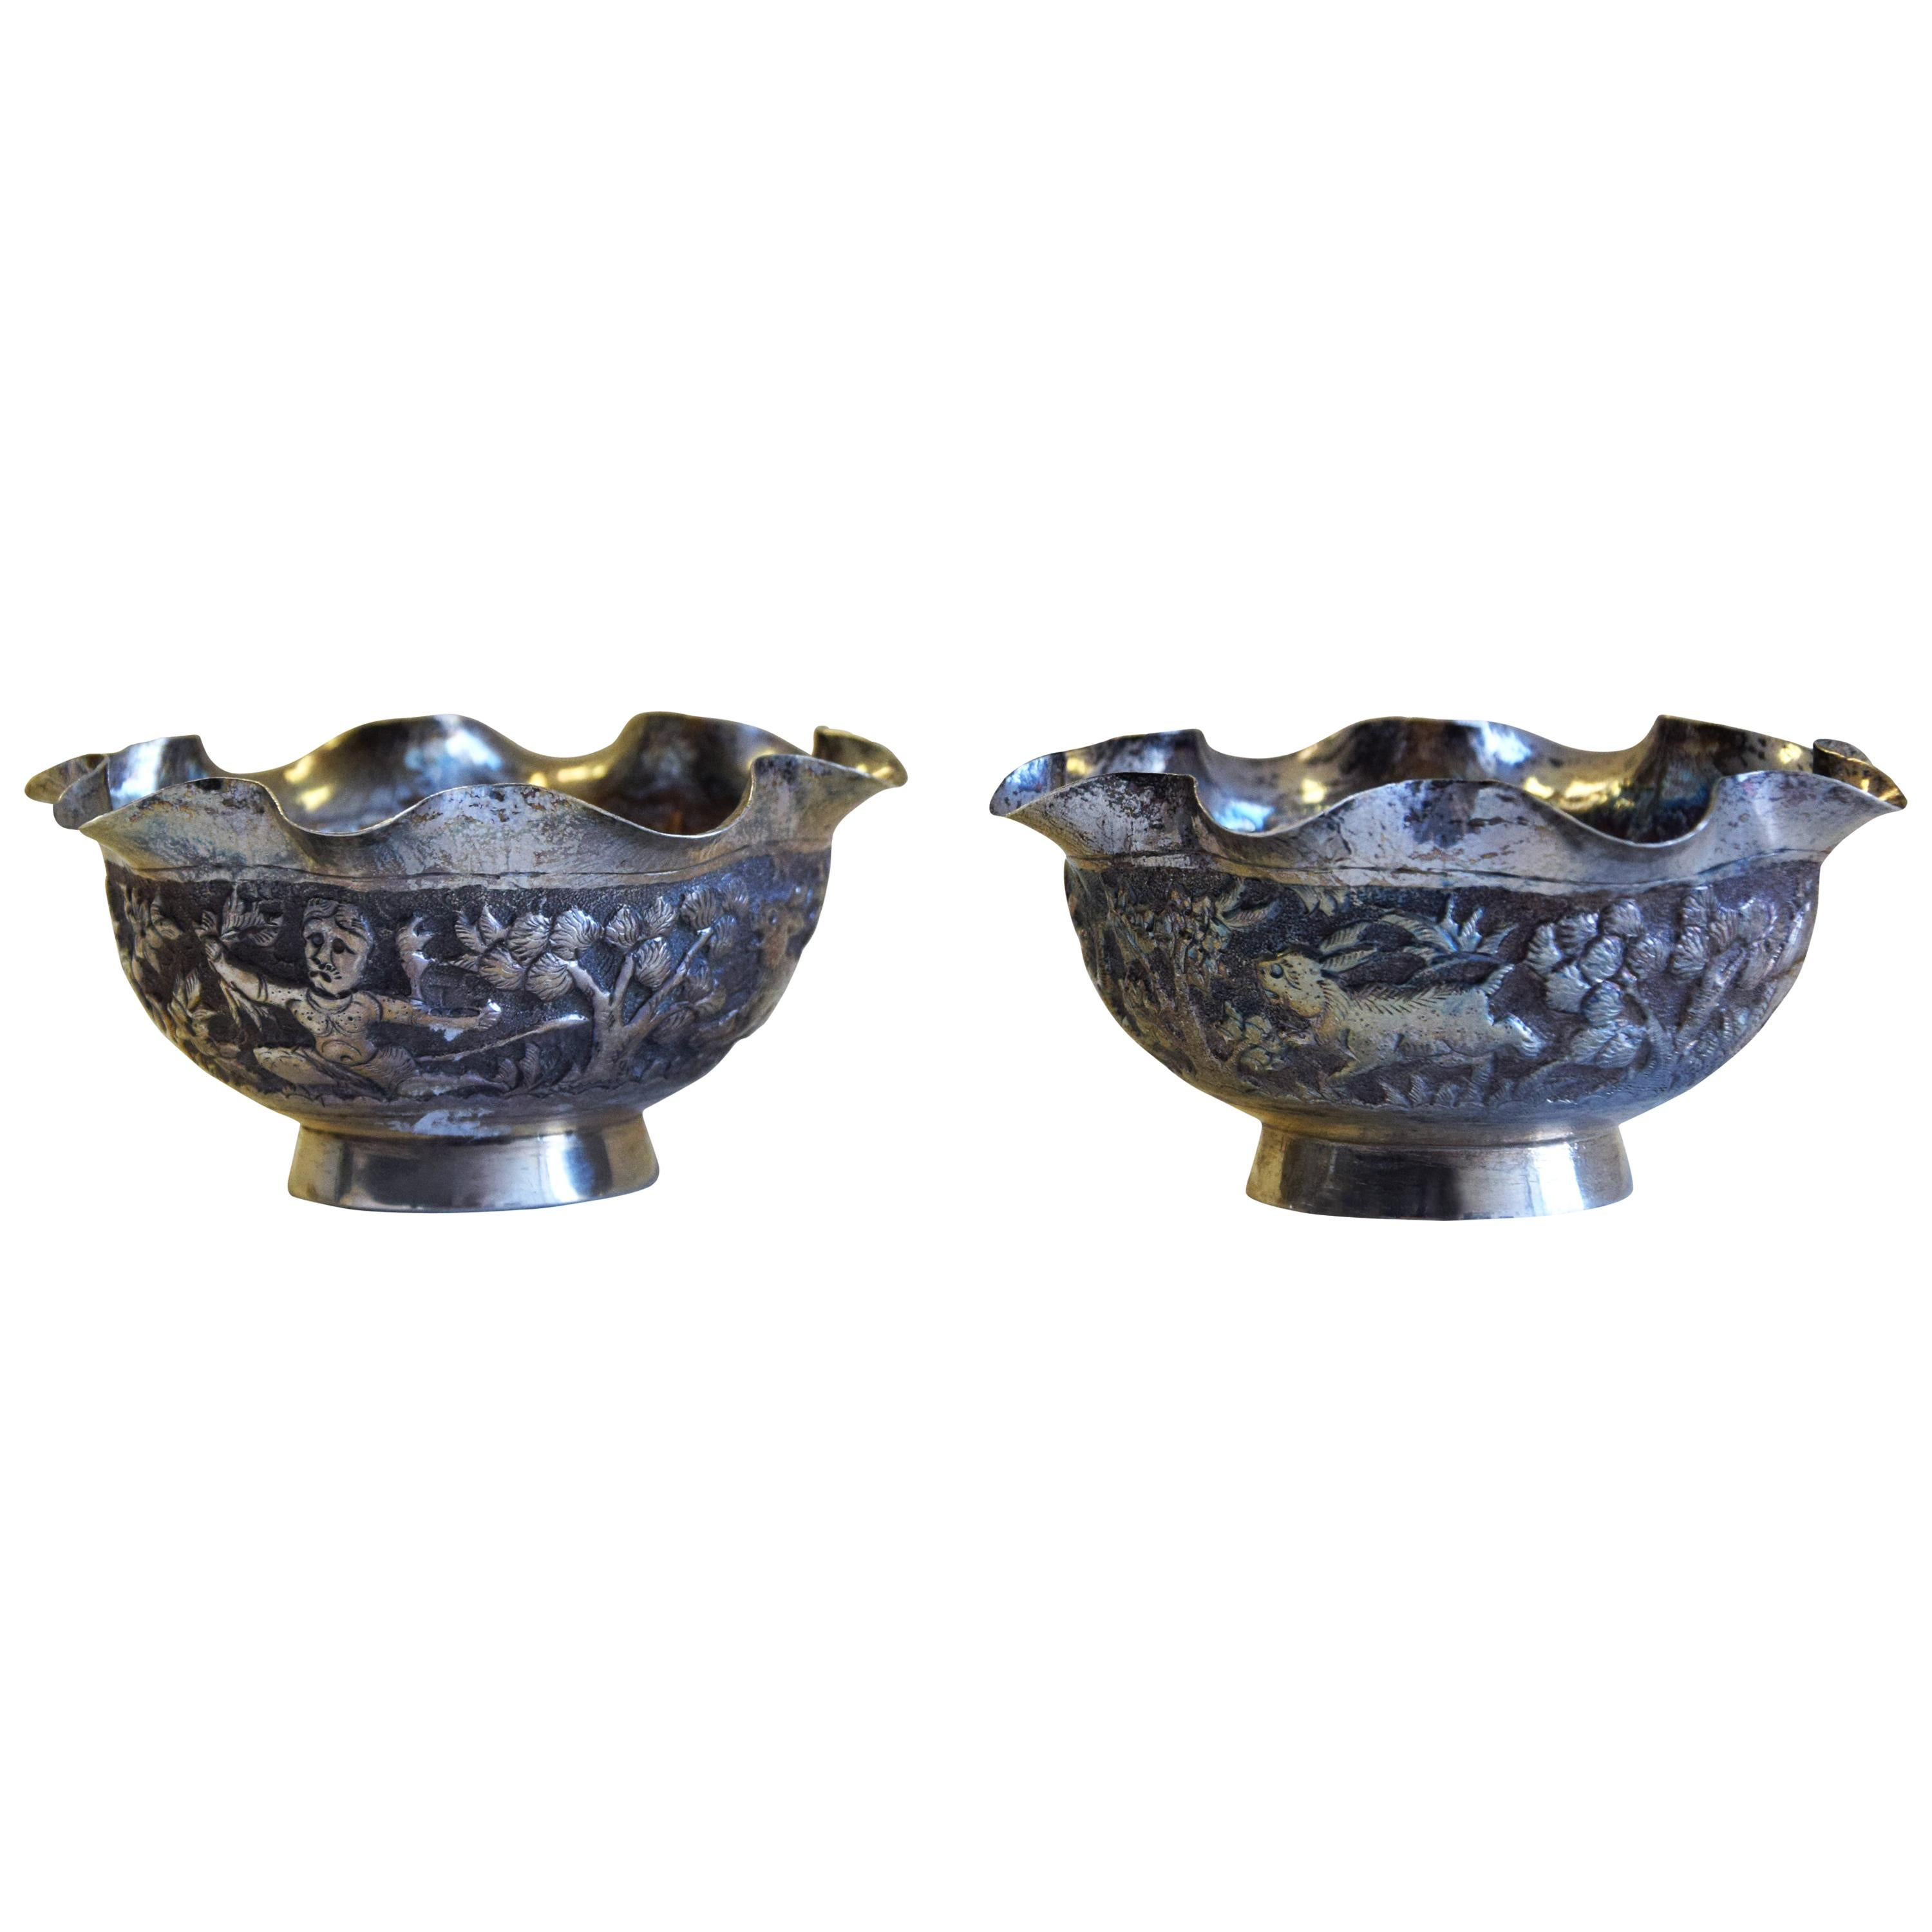 Two Small Silver Bowls, China, Early 20th Century